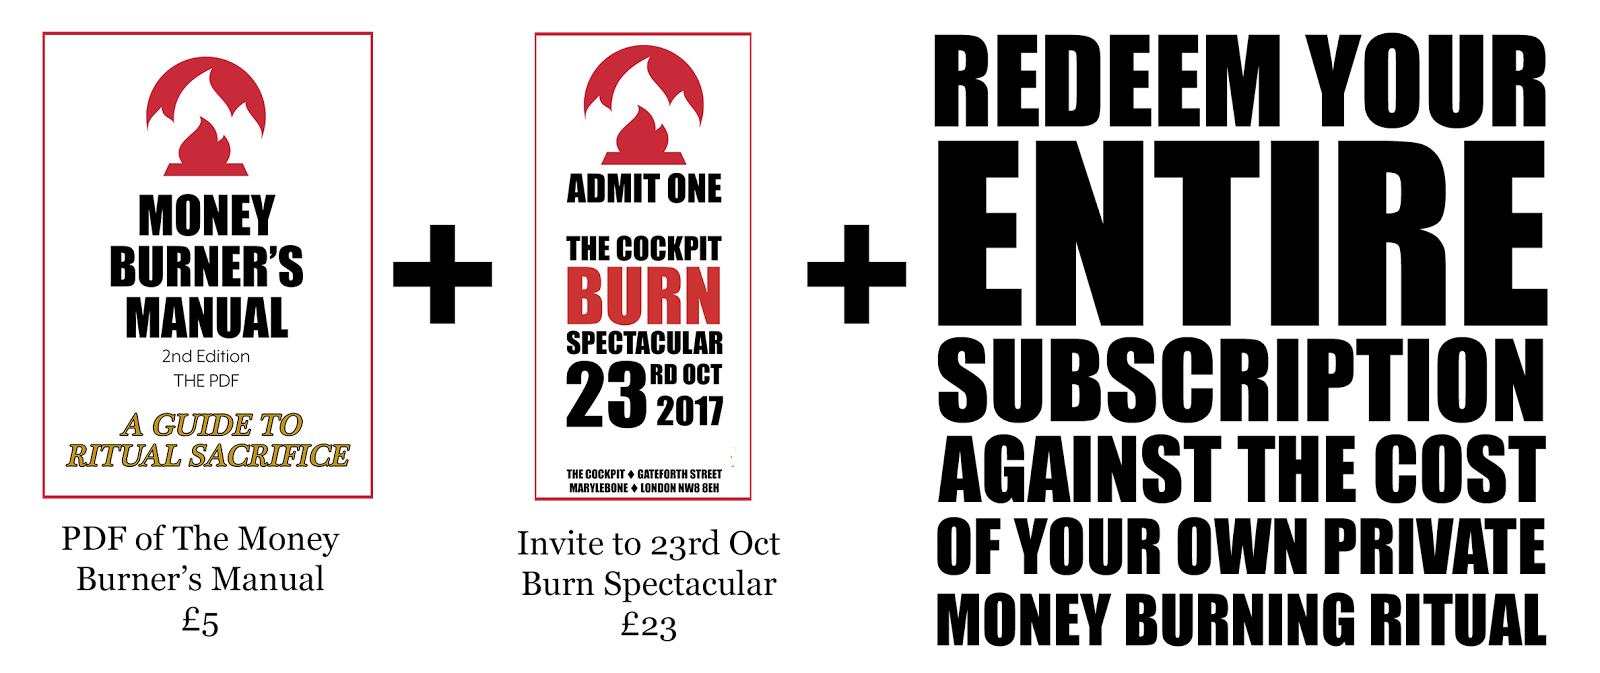 subscription £5 and £10